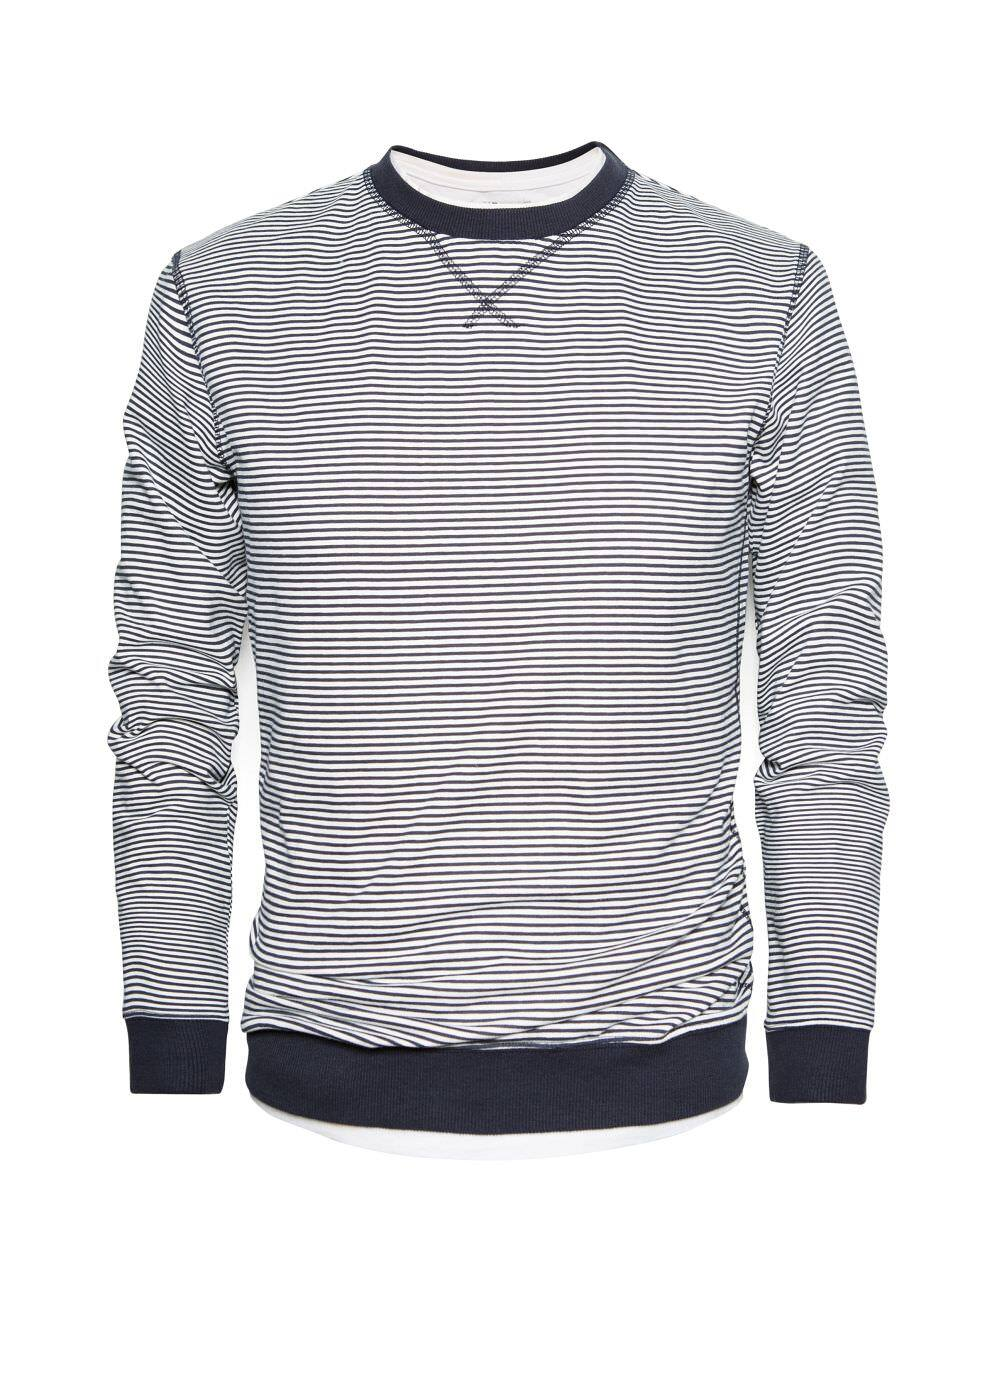 Bicolor striped sweatshirt